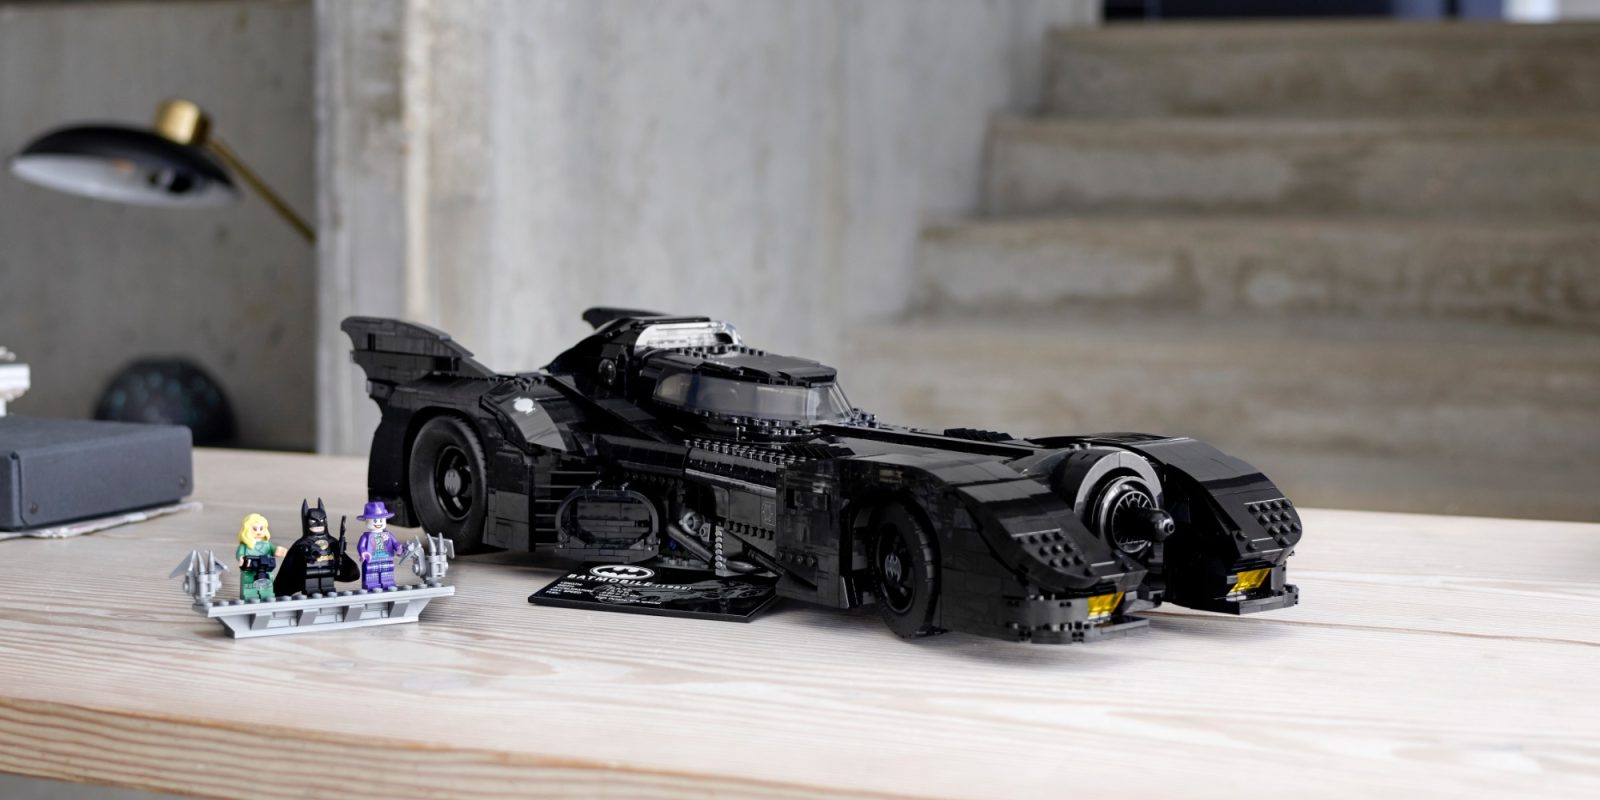 LEGO uncloaks its massive 3,300-piece 1989 Batmobile set with new minifigs